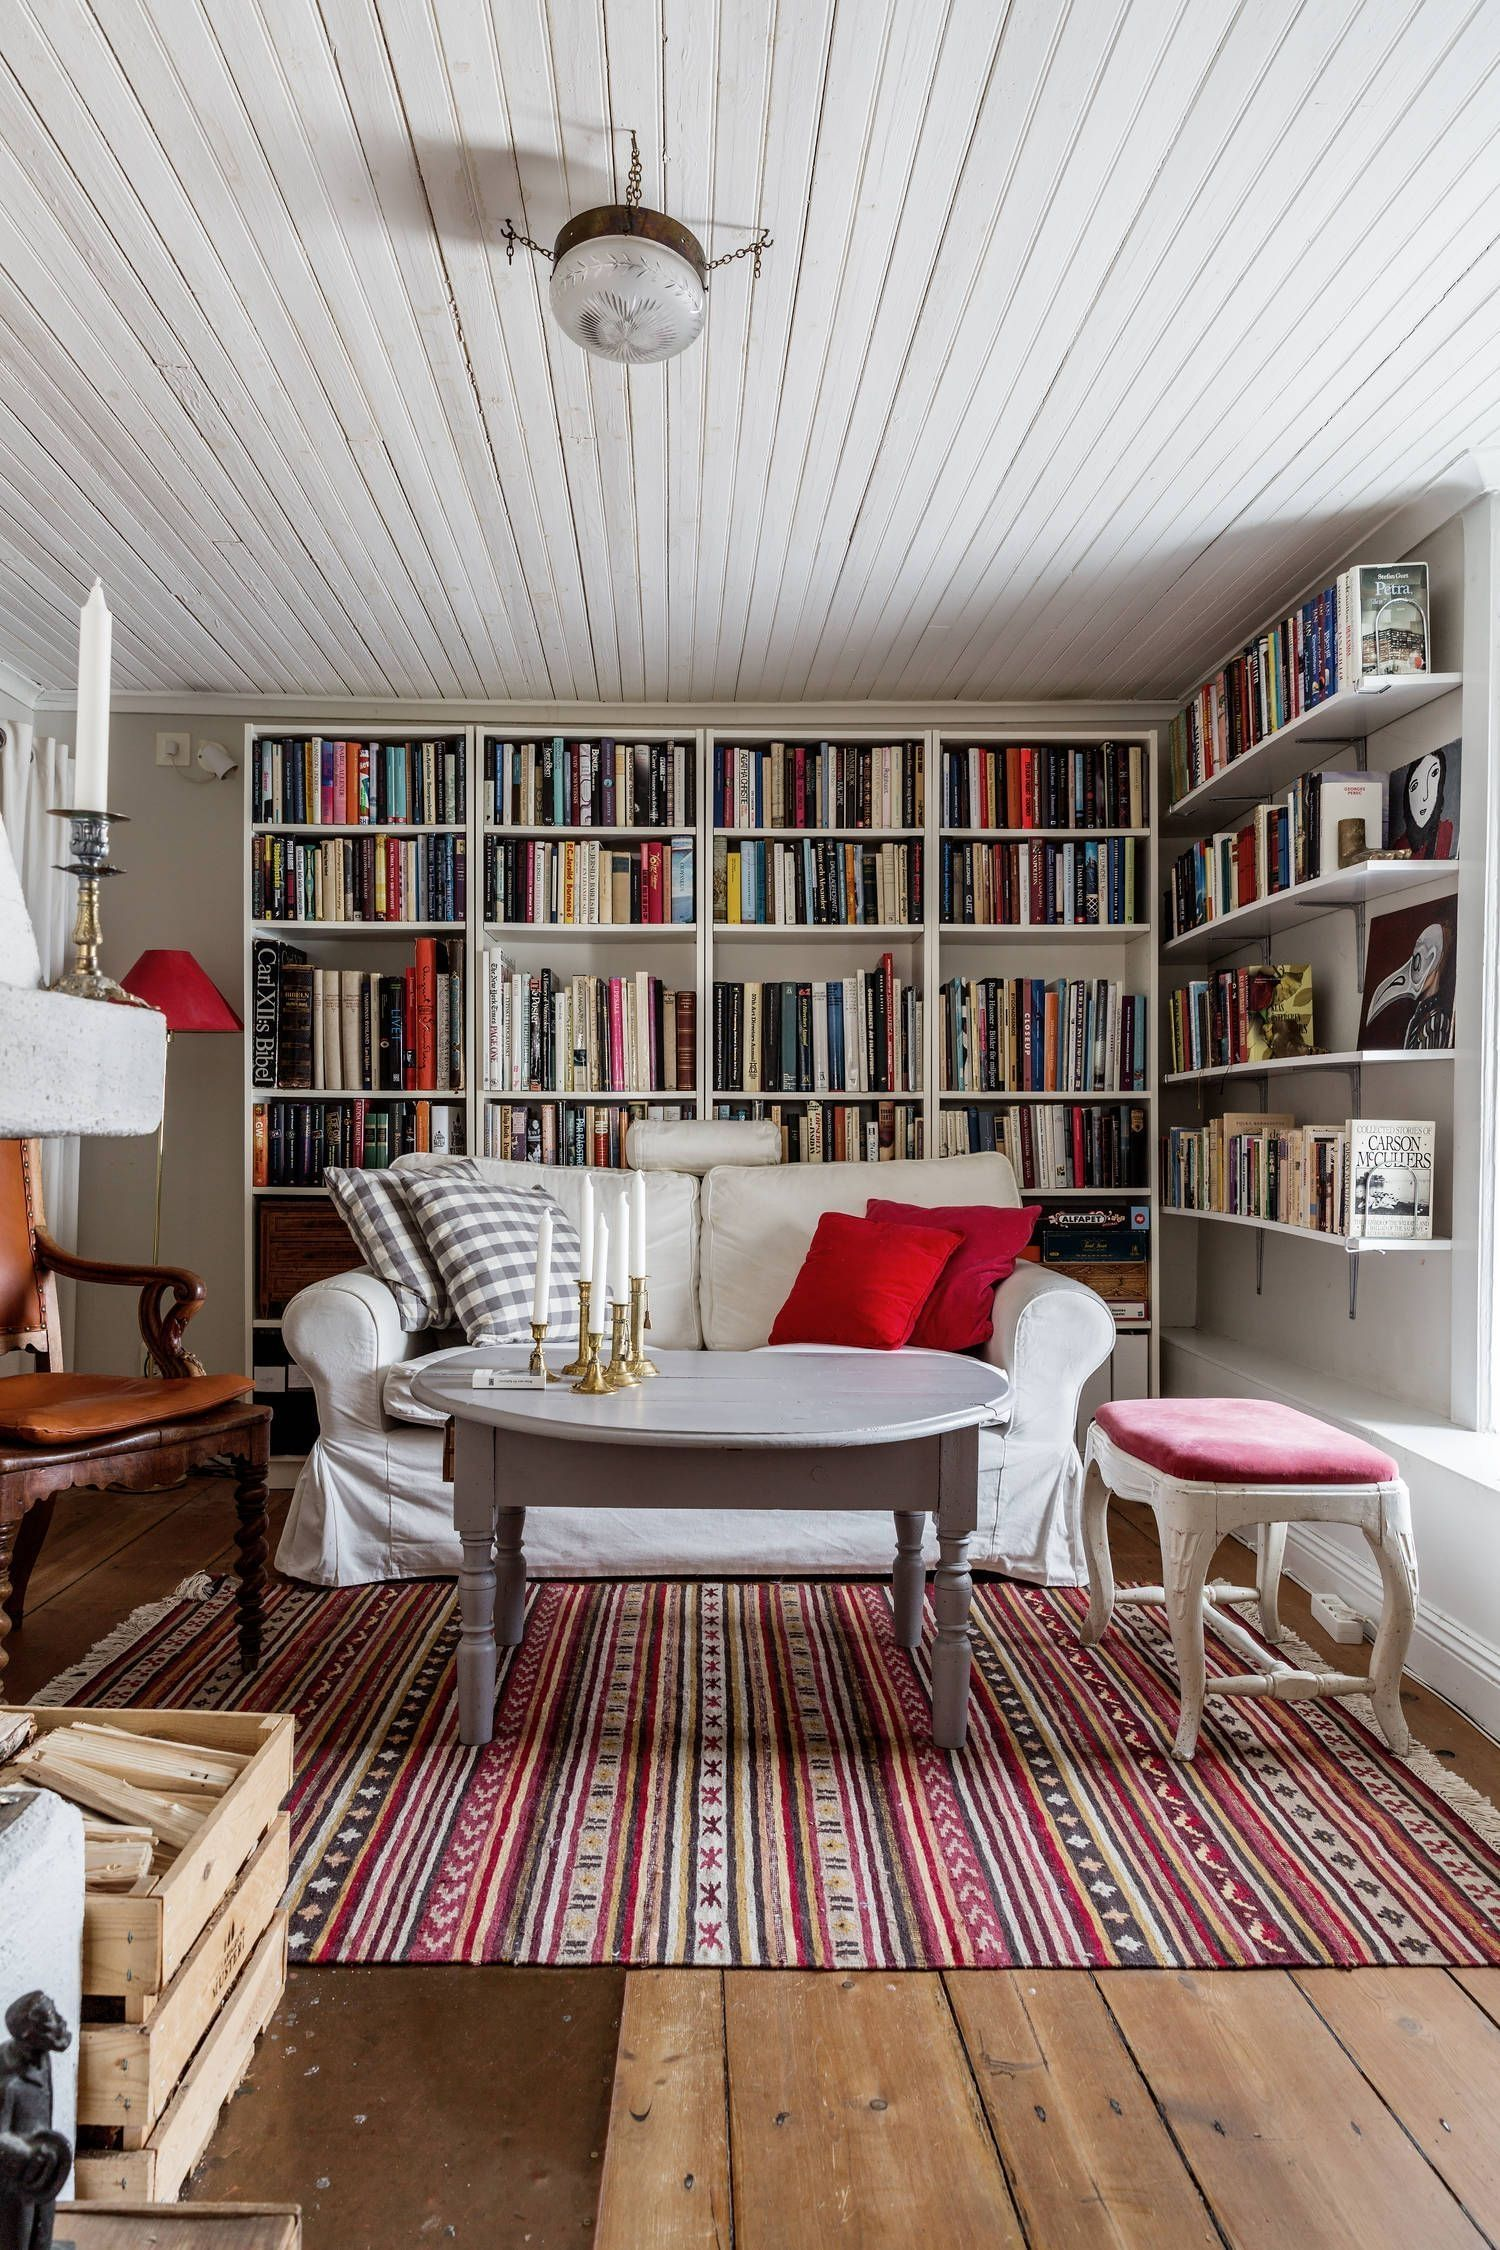 Living Room Library Design Ideas: 47 Wonderful Livingroom Design Ideas